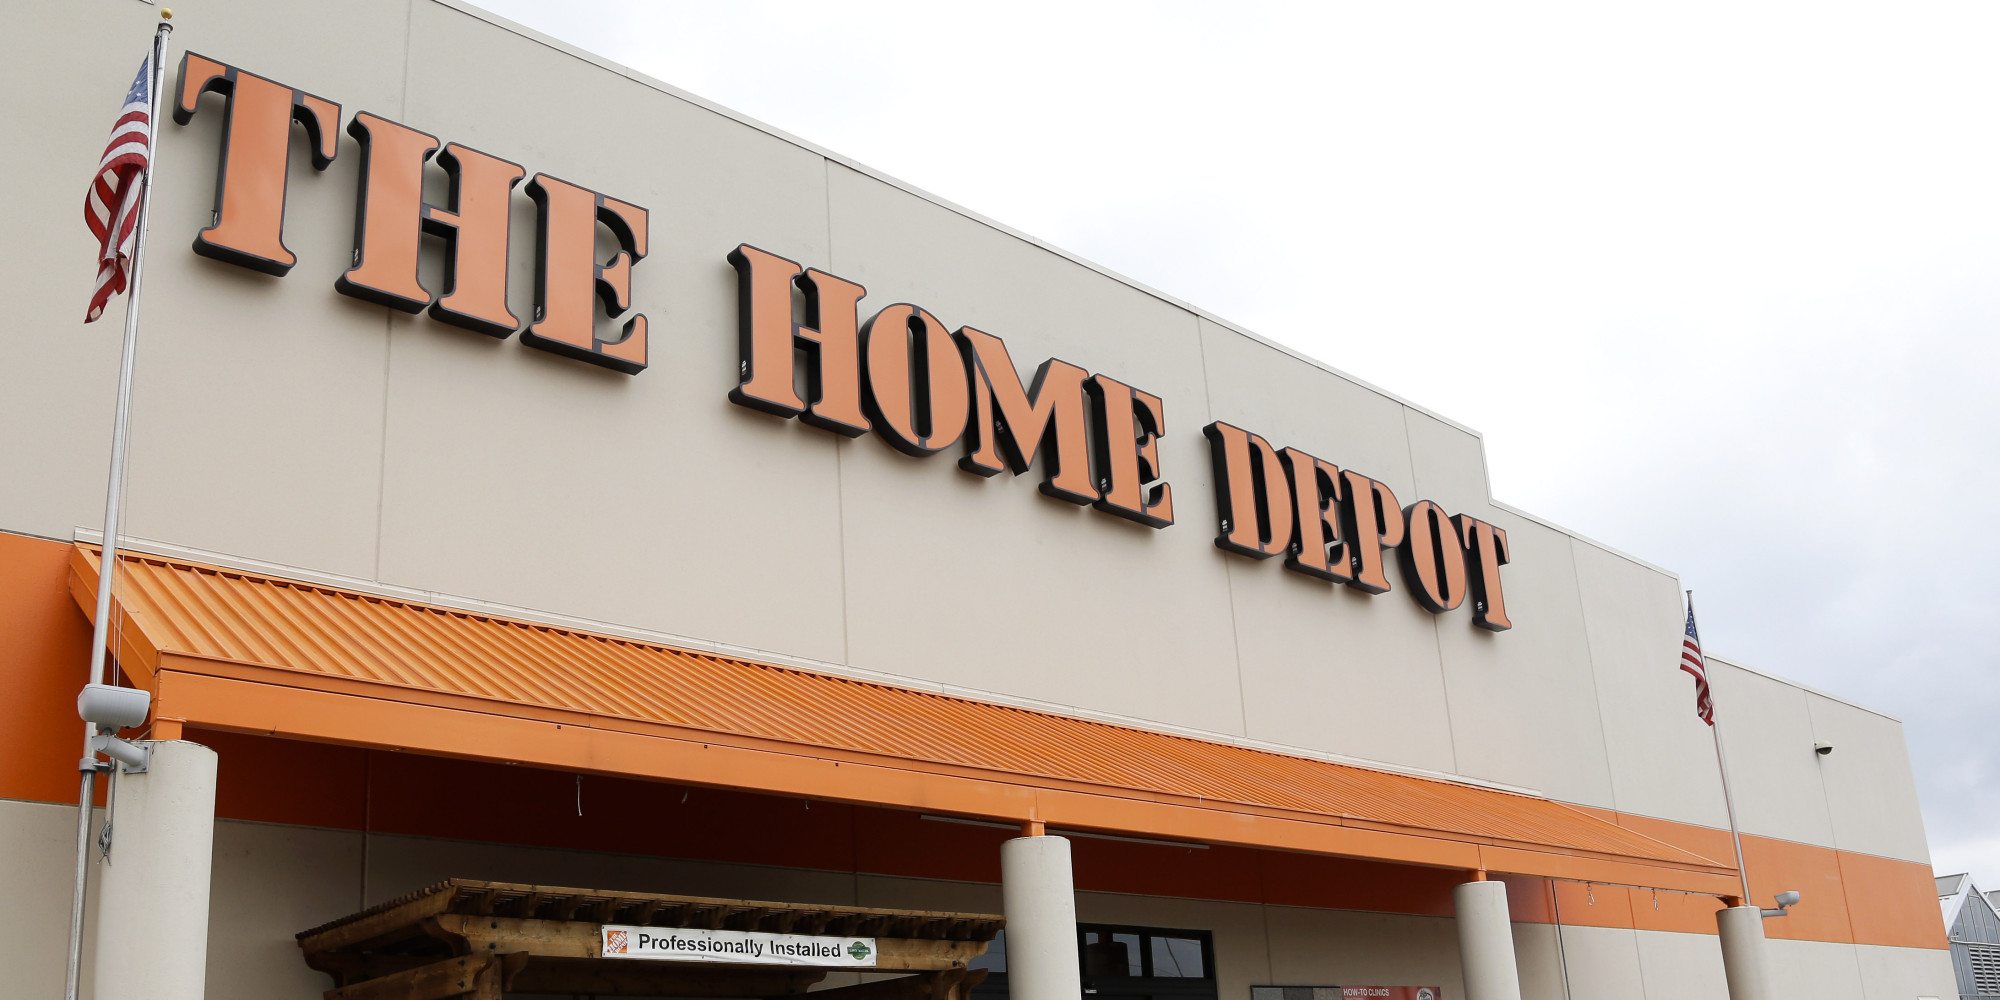 Home Depot Admits Million Payment Cards At Risk After Cyber